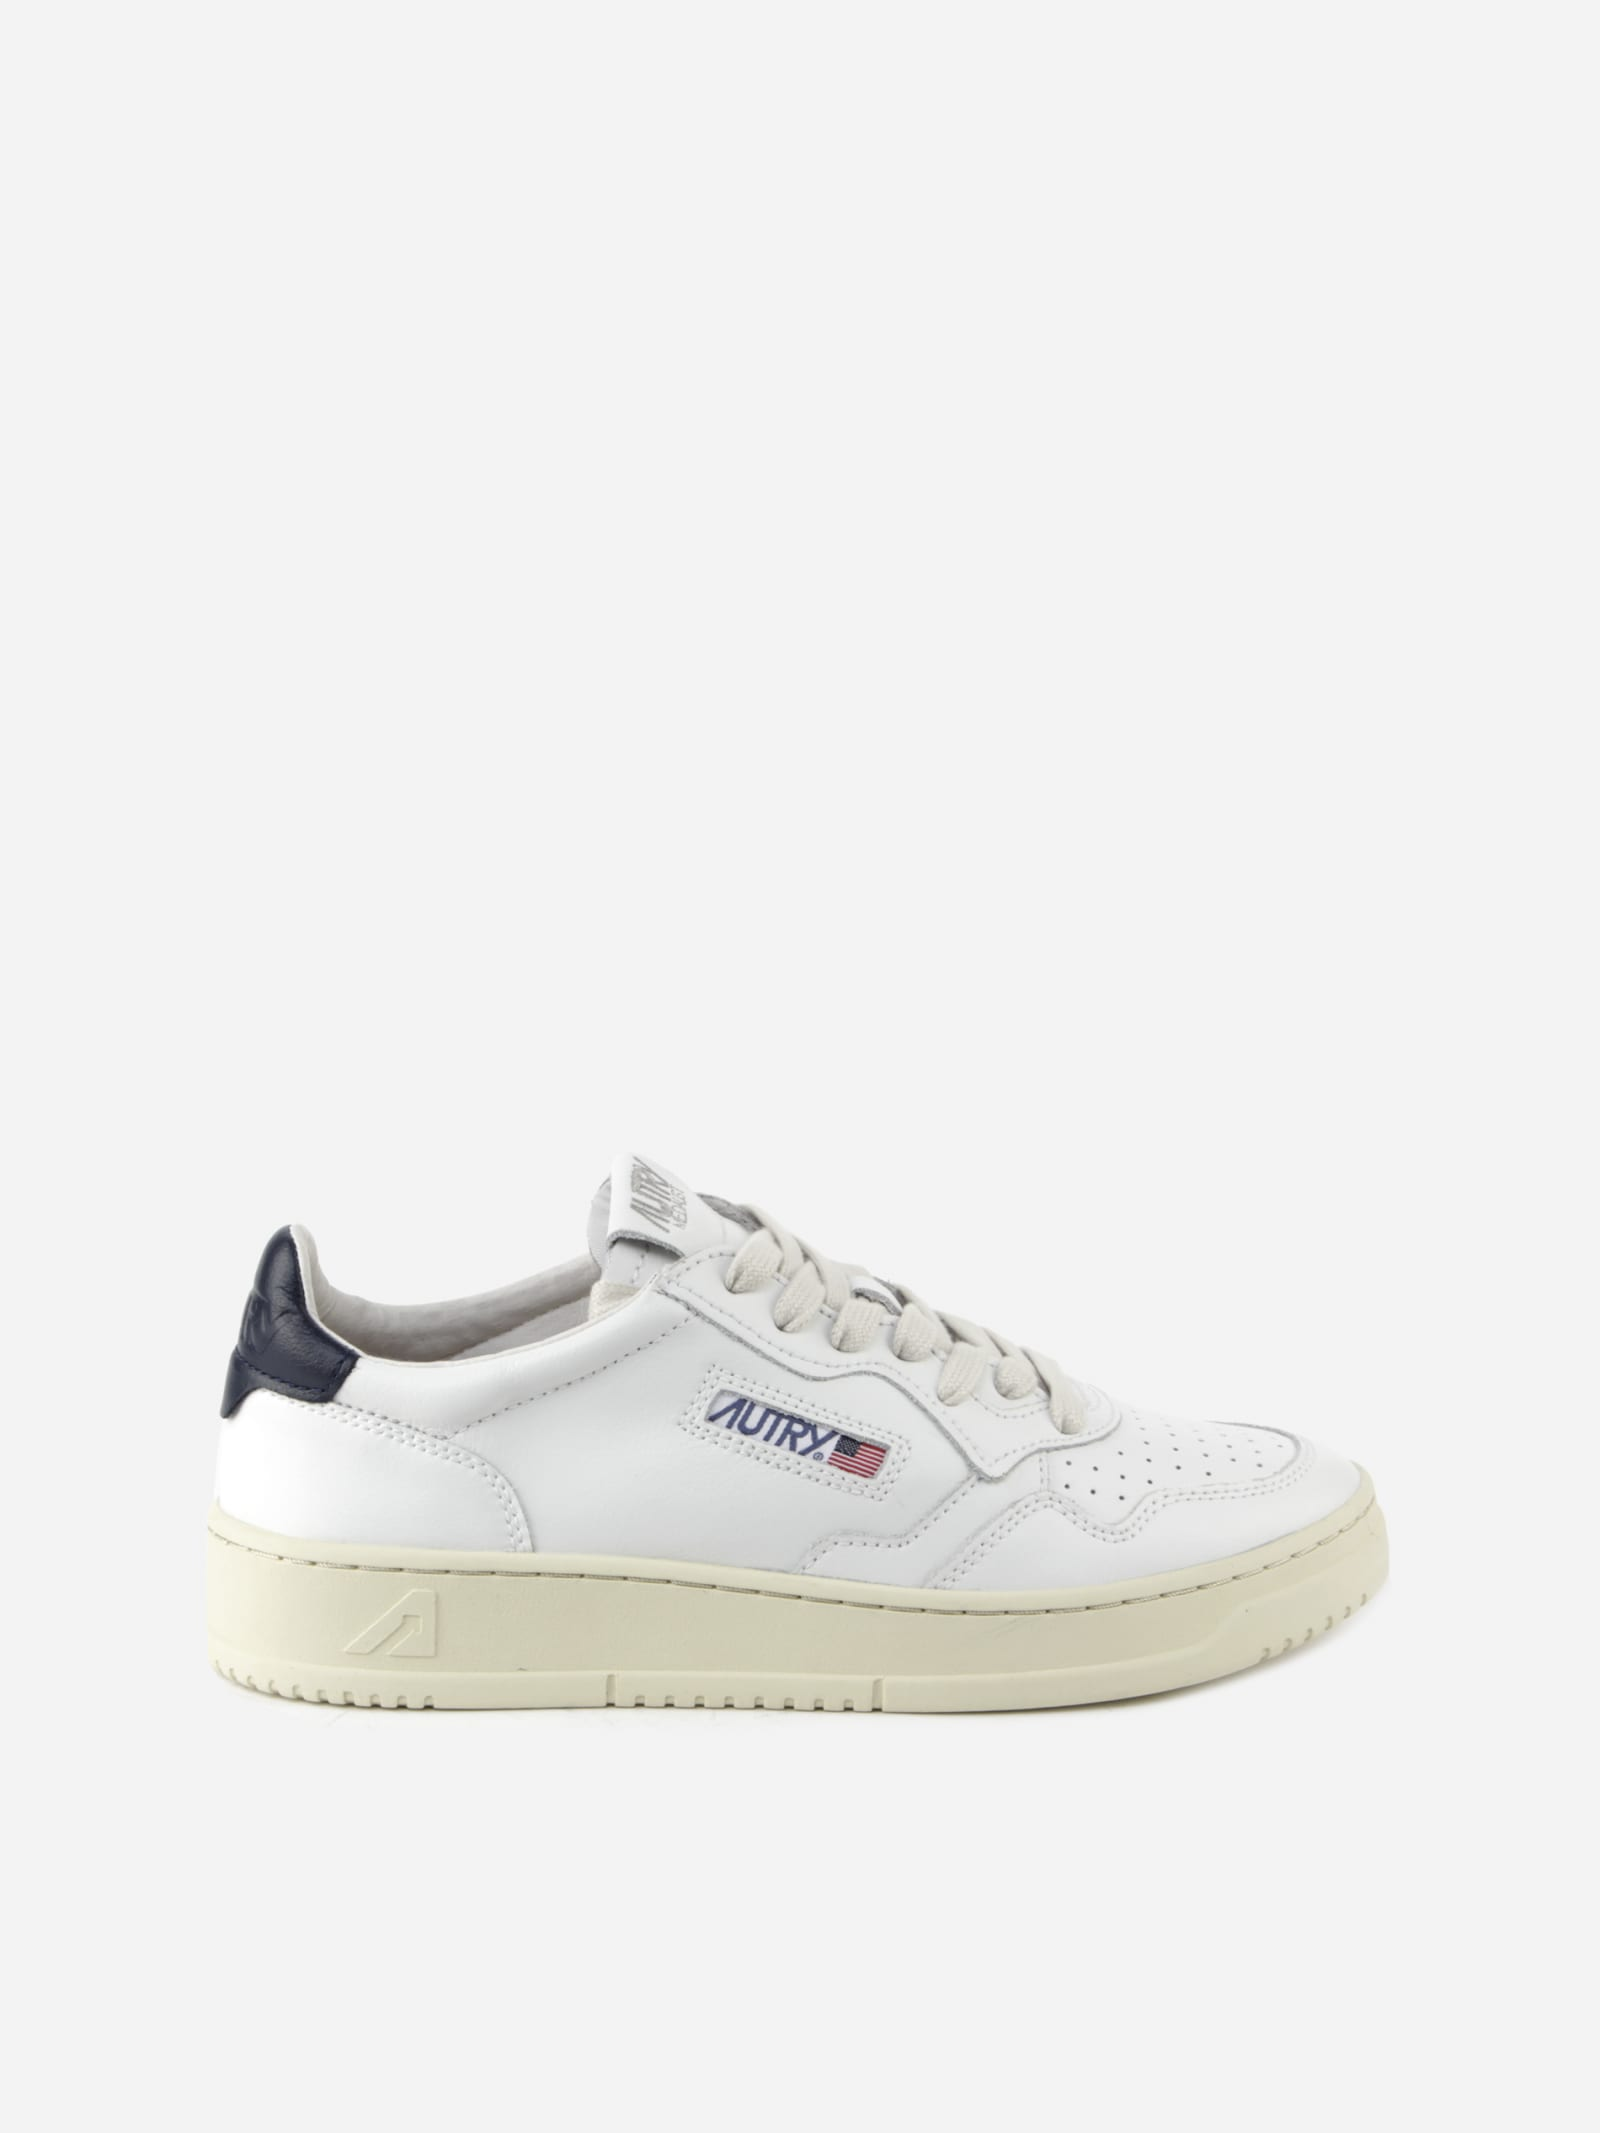 Autry WHITE LEATHER SNEAKERS